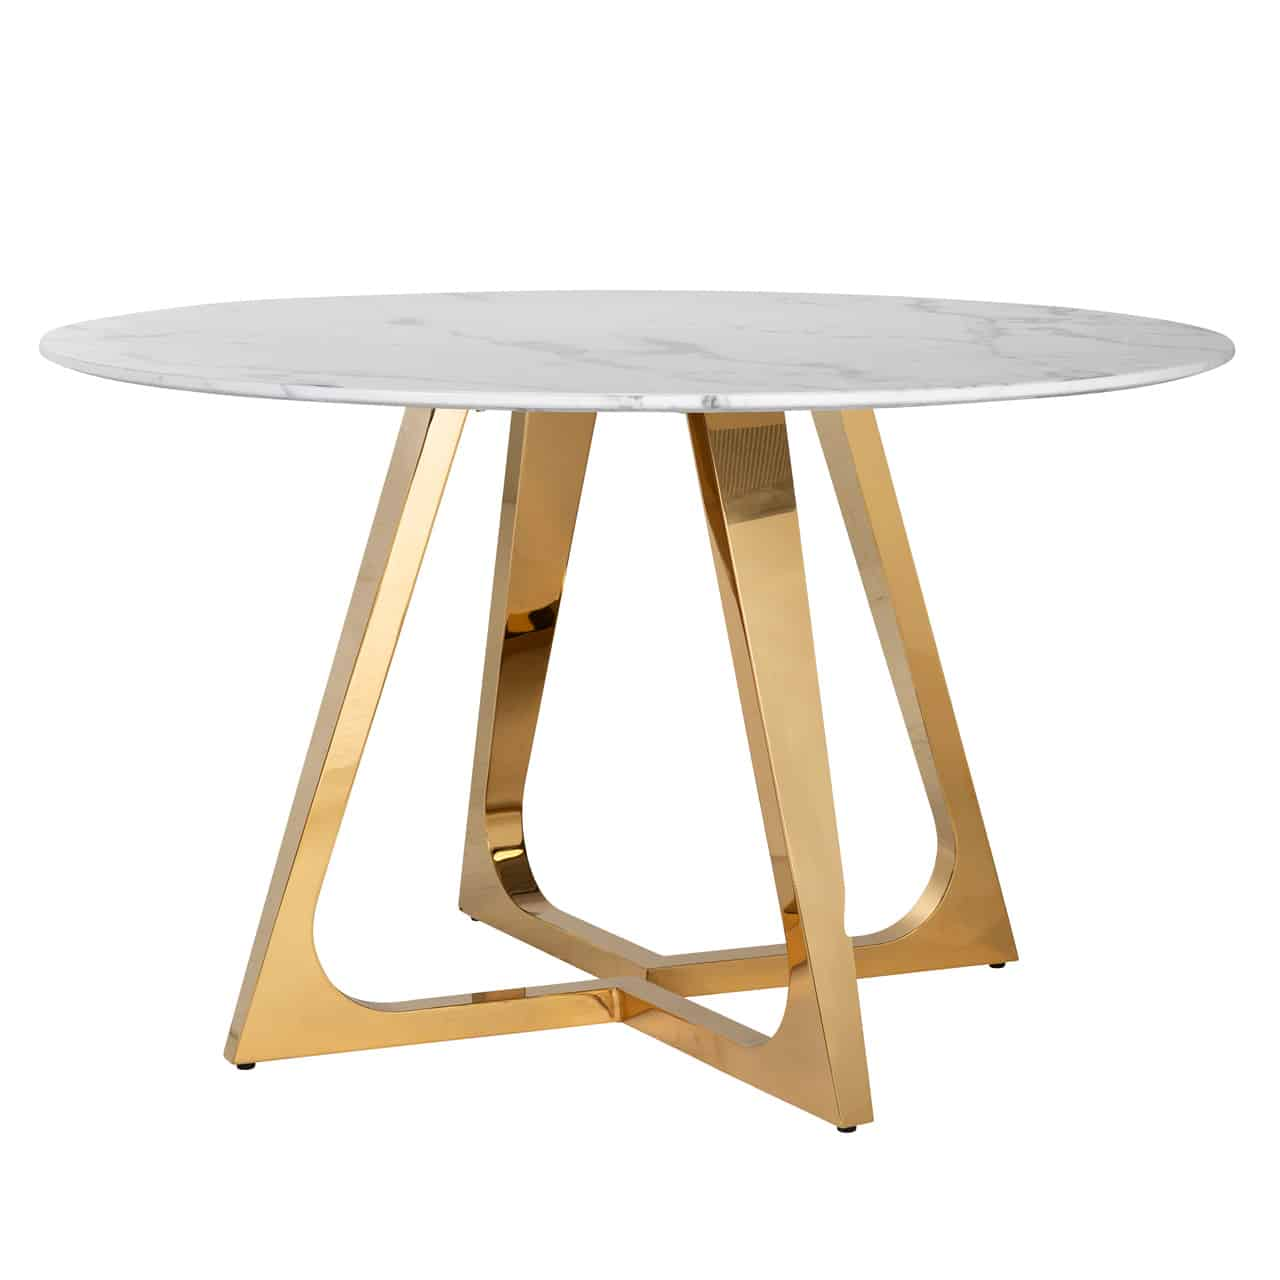 Modele Salle A Manger Table Ronde table ronde marbre blanc pieds or design dynasty richmond